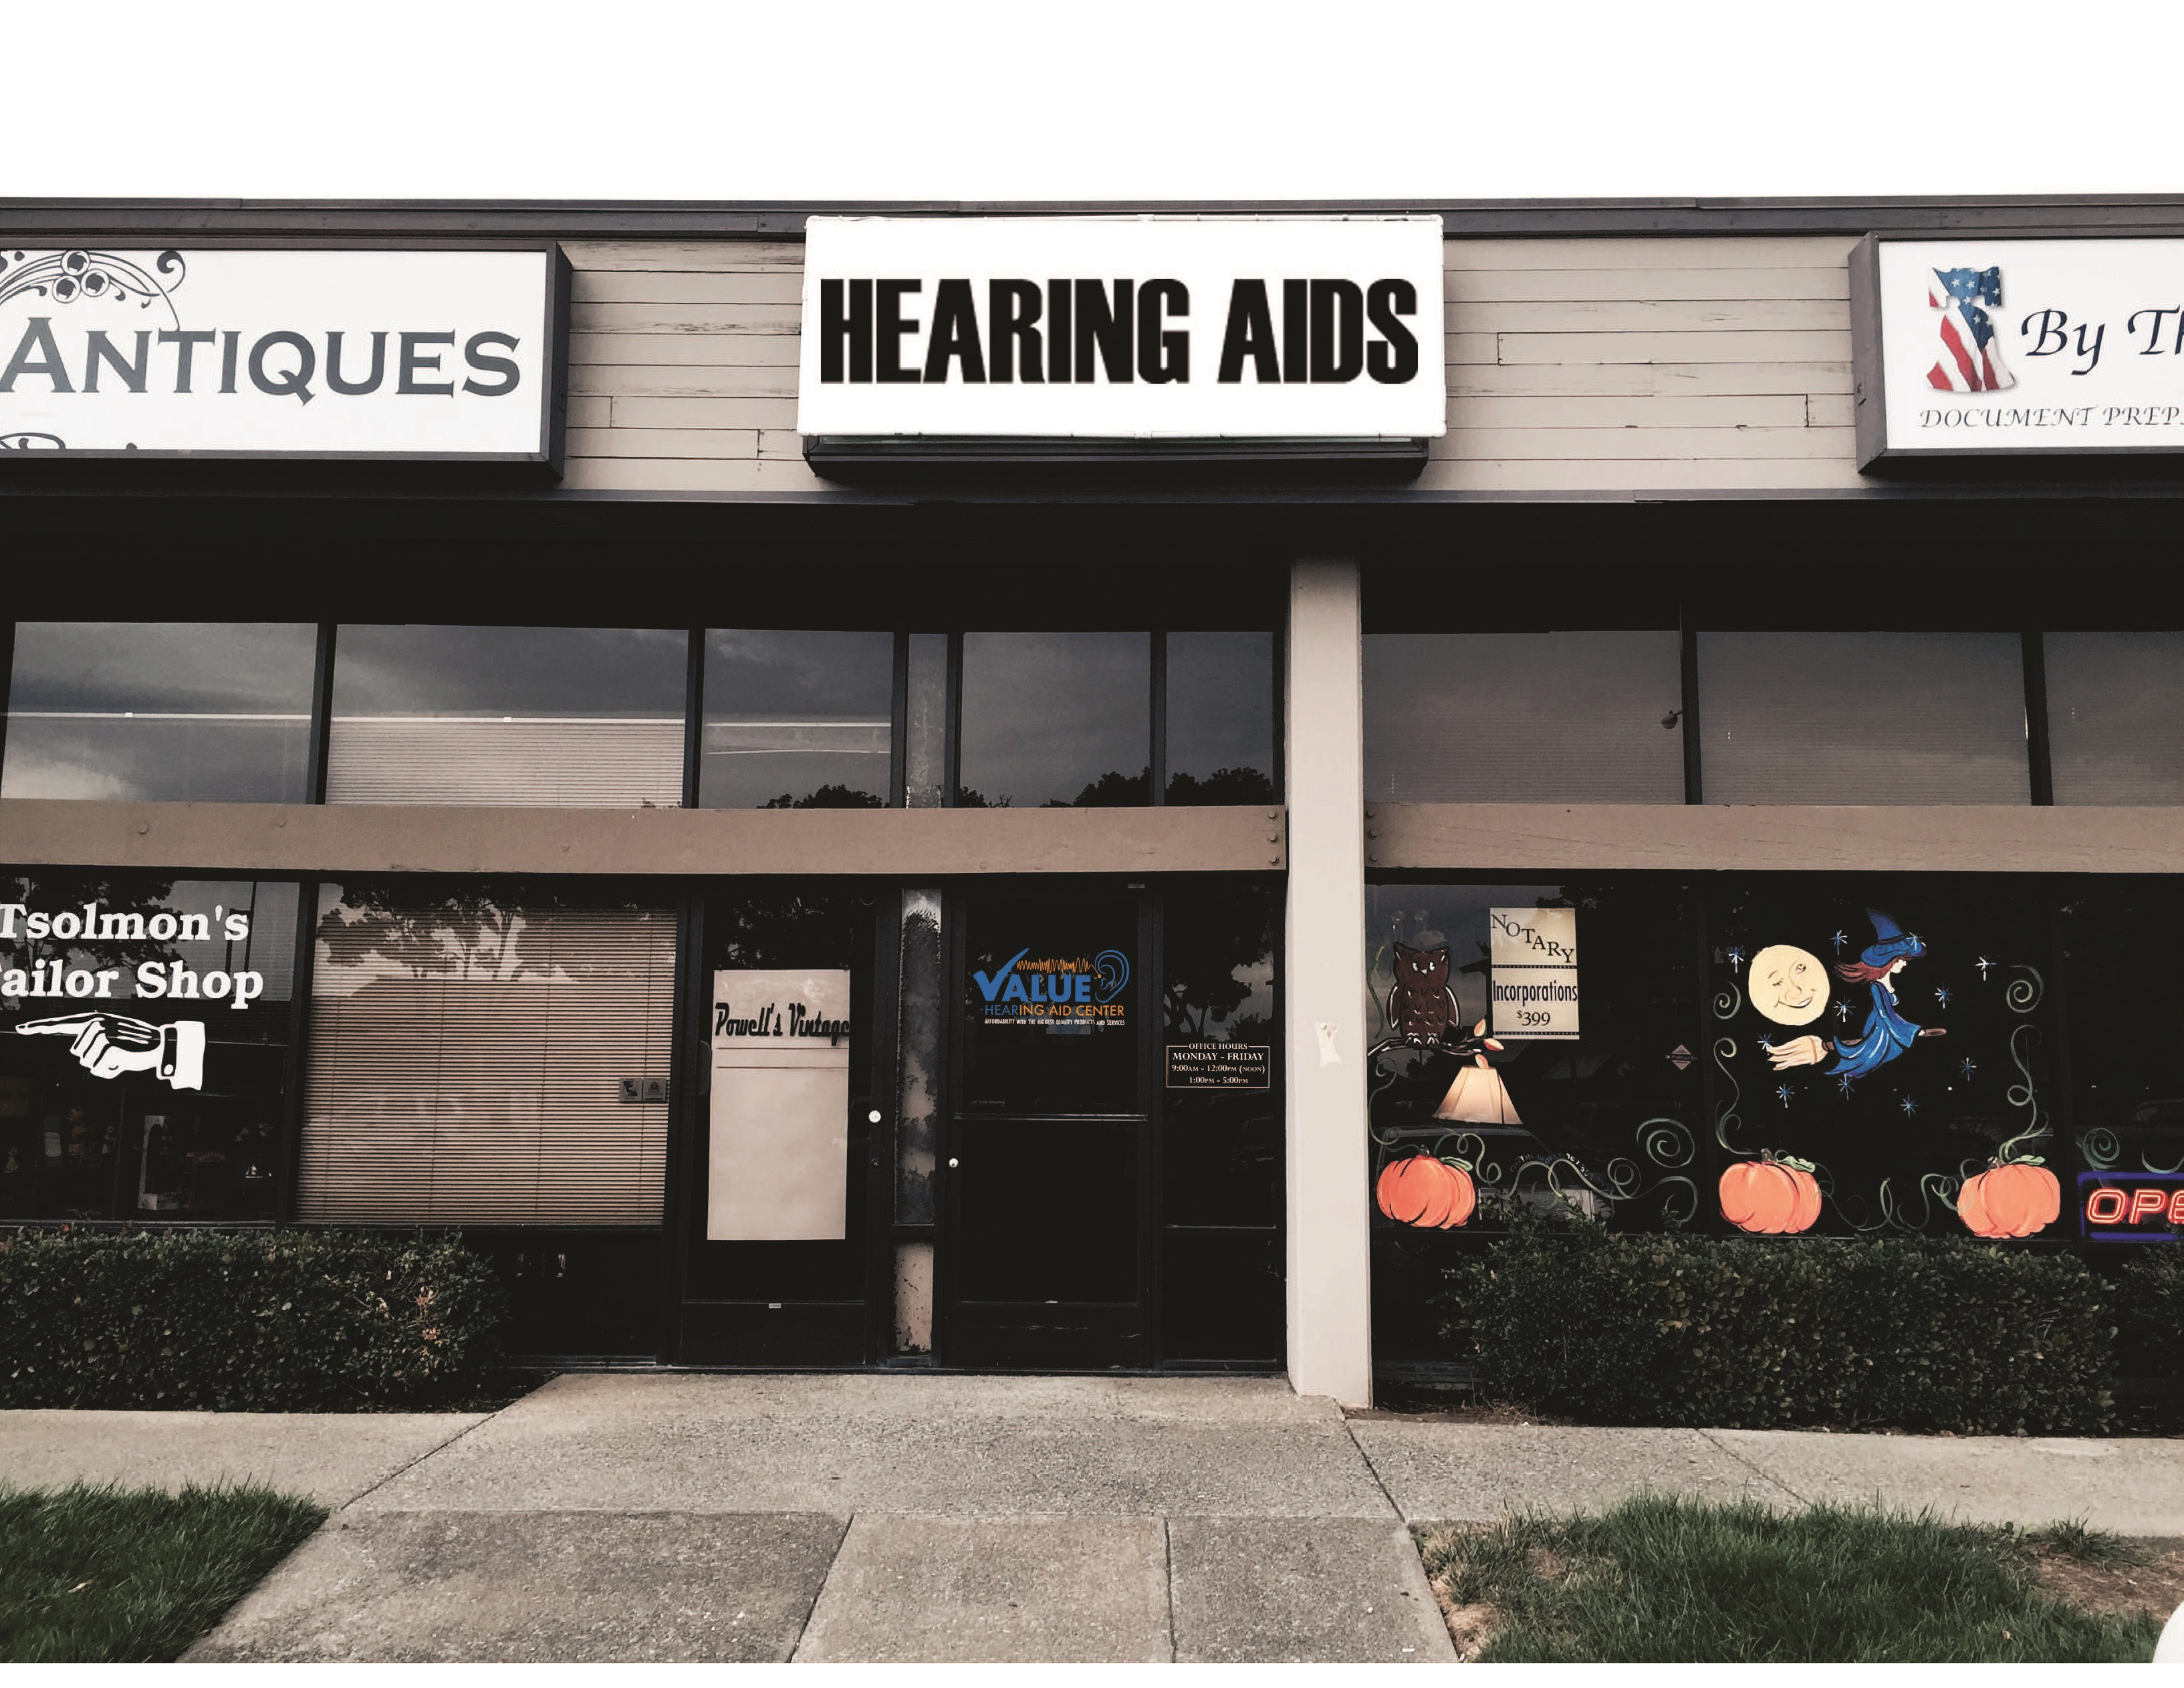 Value Audiology & Hearing Aid Center - Fairfield Location